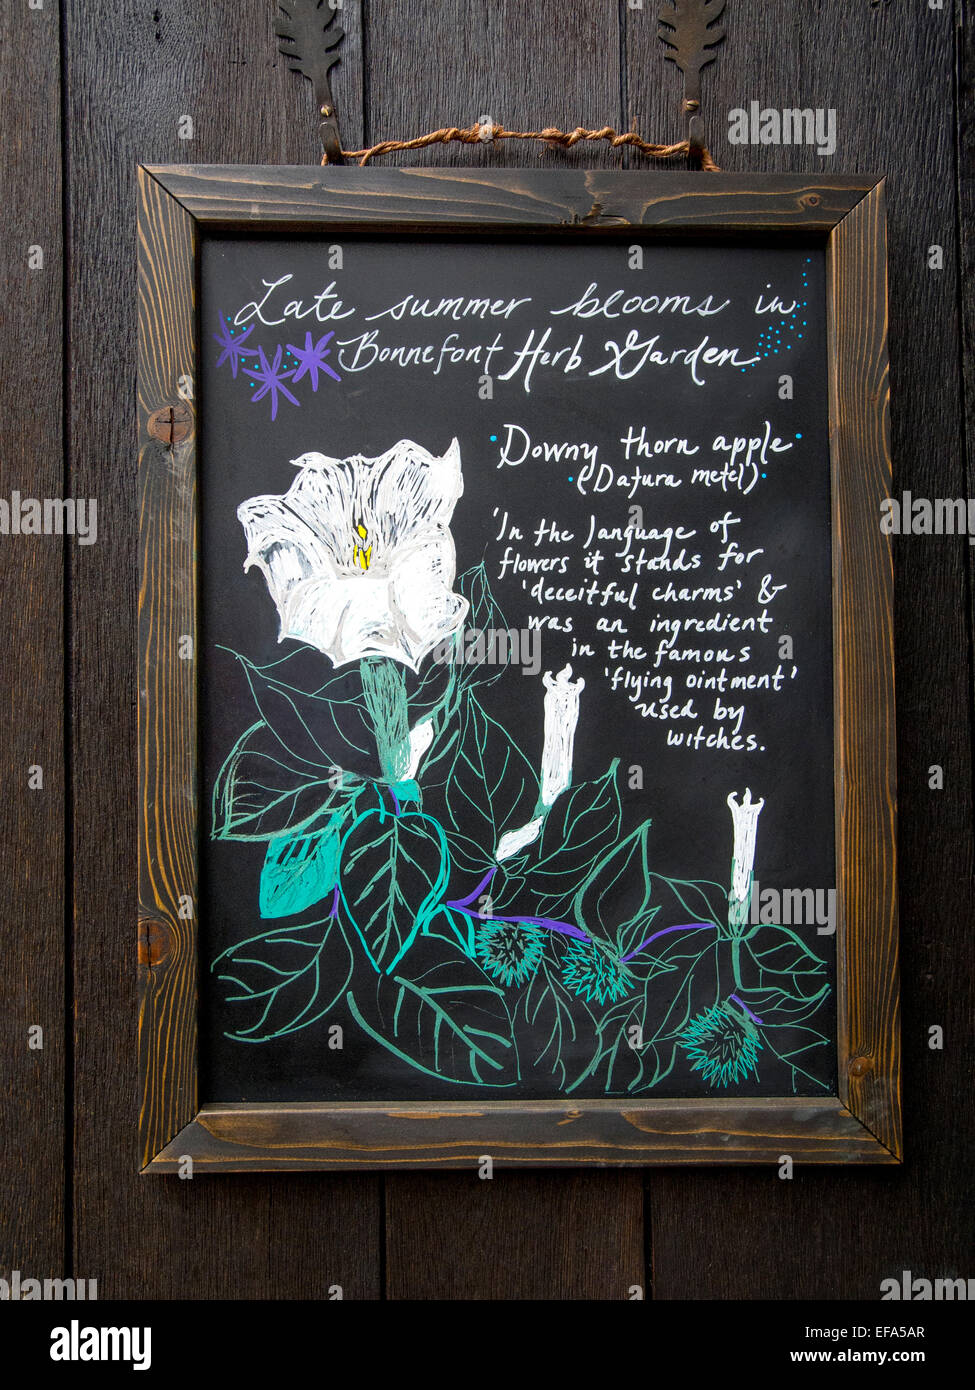 A blackboard description of the Down Thorn Apple plant in the Stock